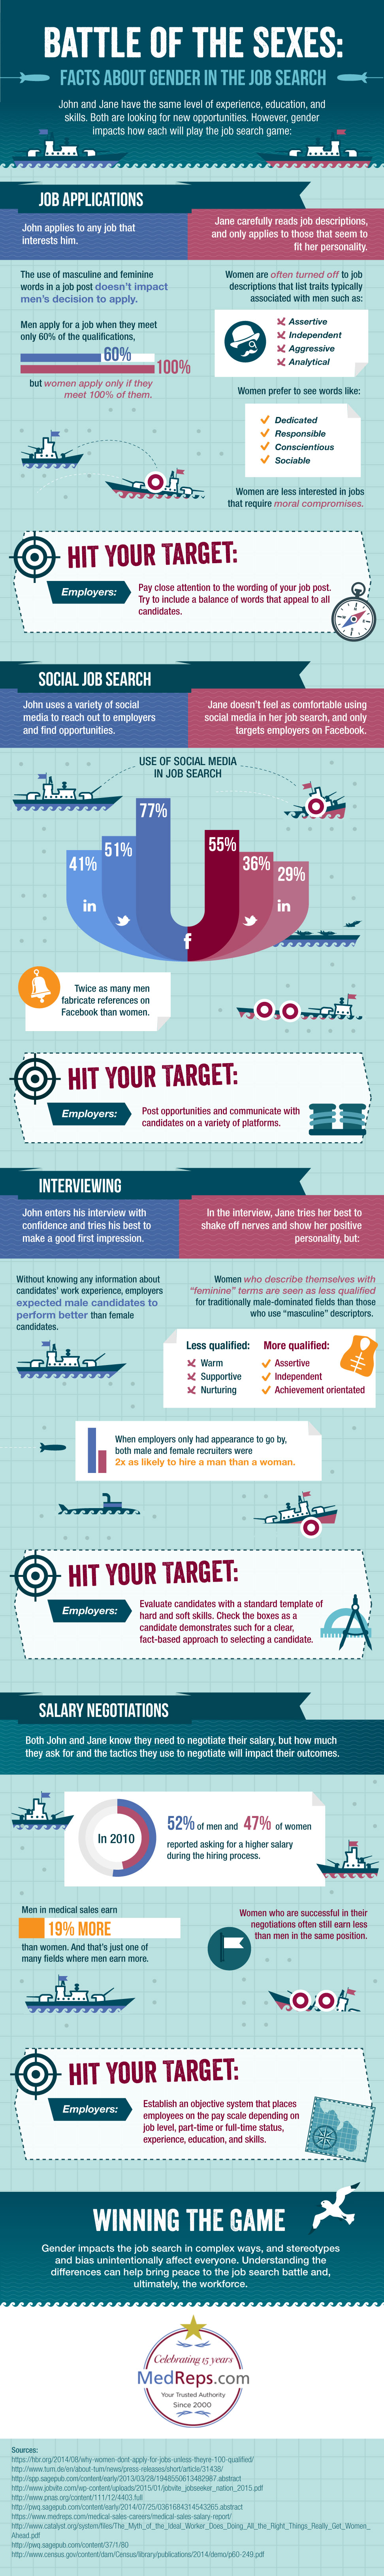 BattleoftheSexes-Facts-About-Gender-Job-Search-Infographic